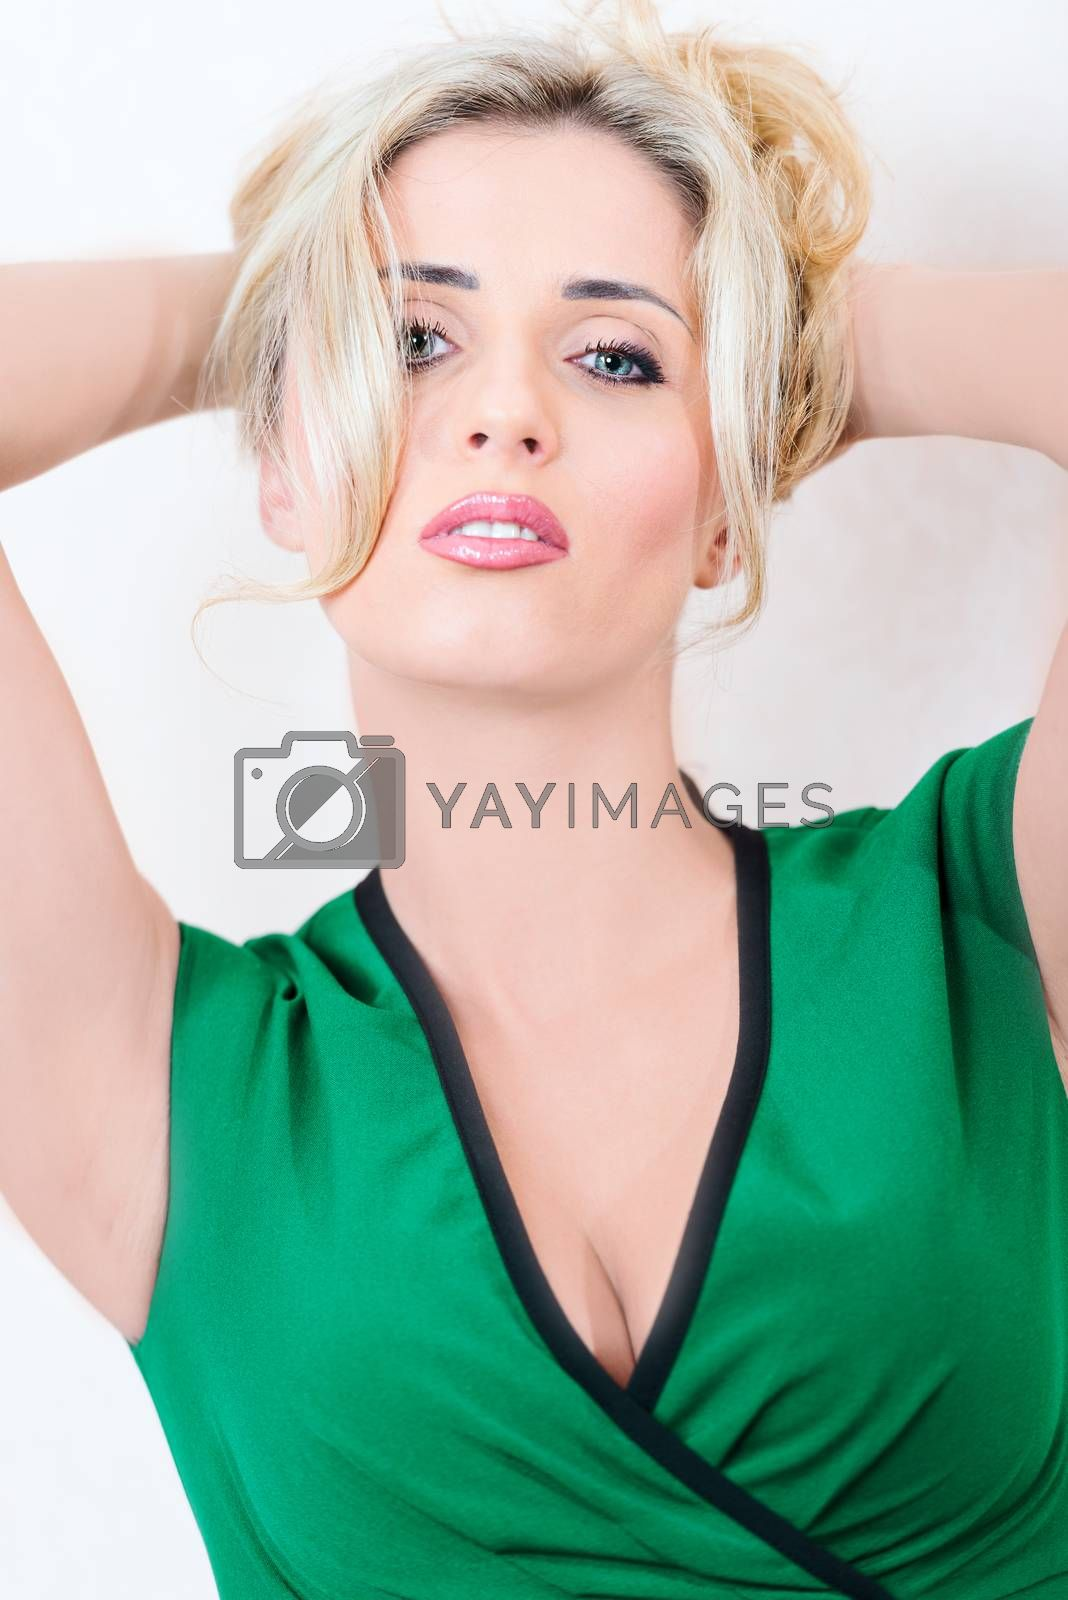 Royalty free image of Blond portrait in dress by Nanisimova